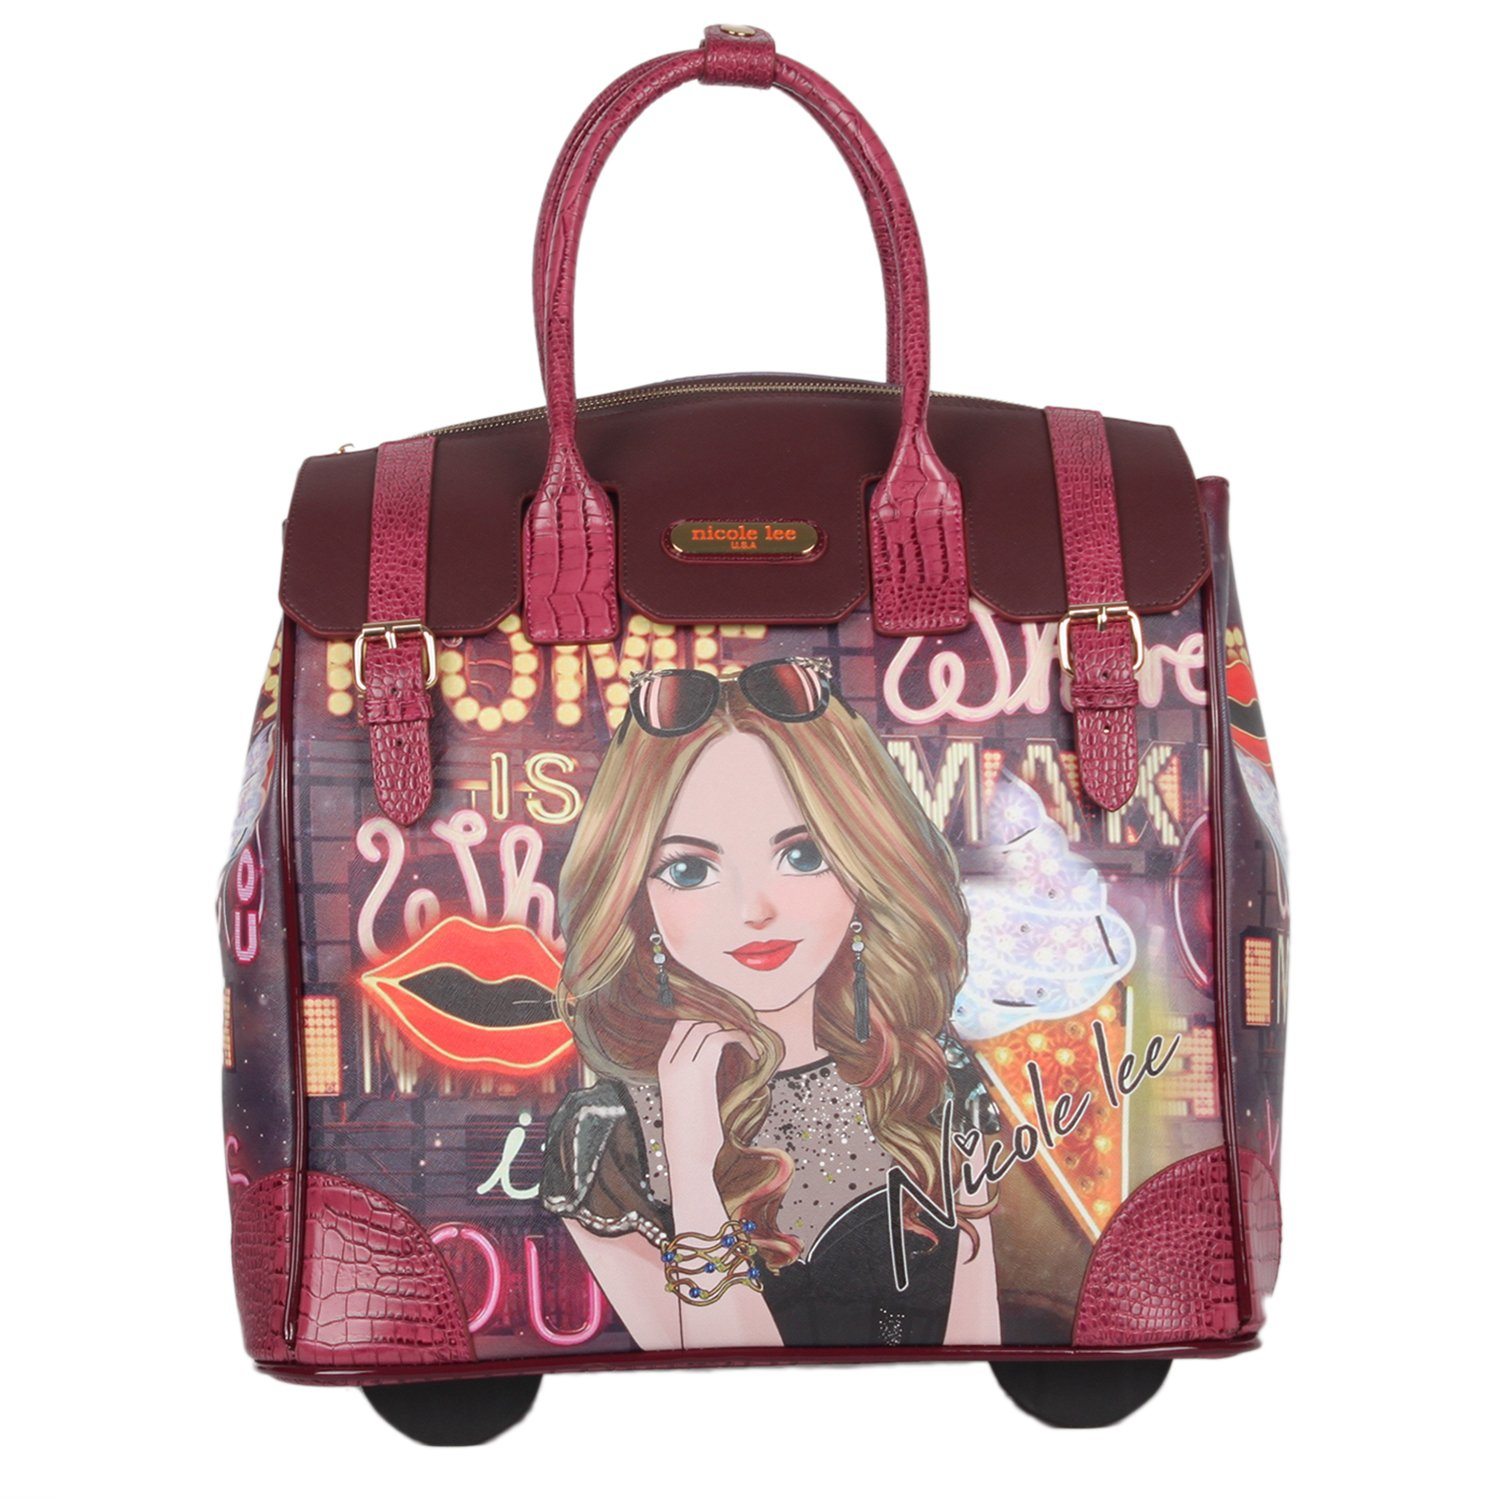 Nicole Lee Women's Fashion [Purple] Print Rolling Business Laptop Compartment Travel Tote, Girl's Night Out, One Size